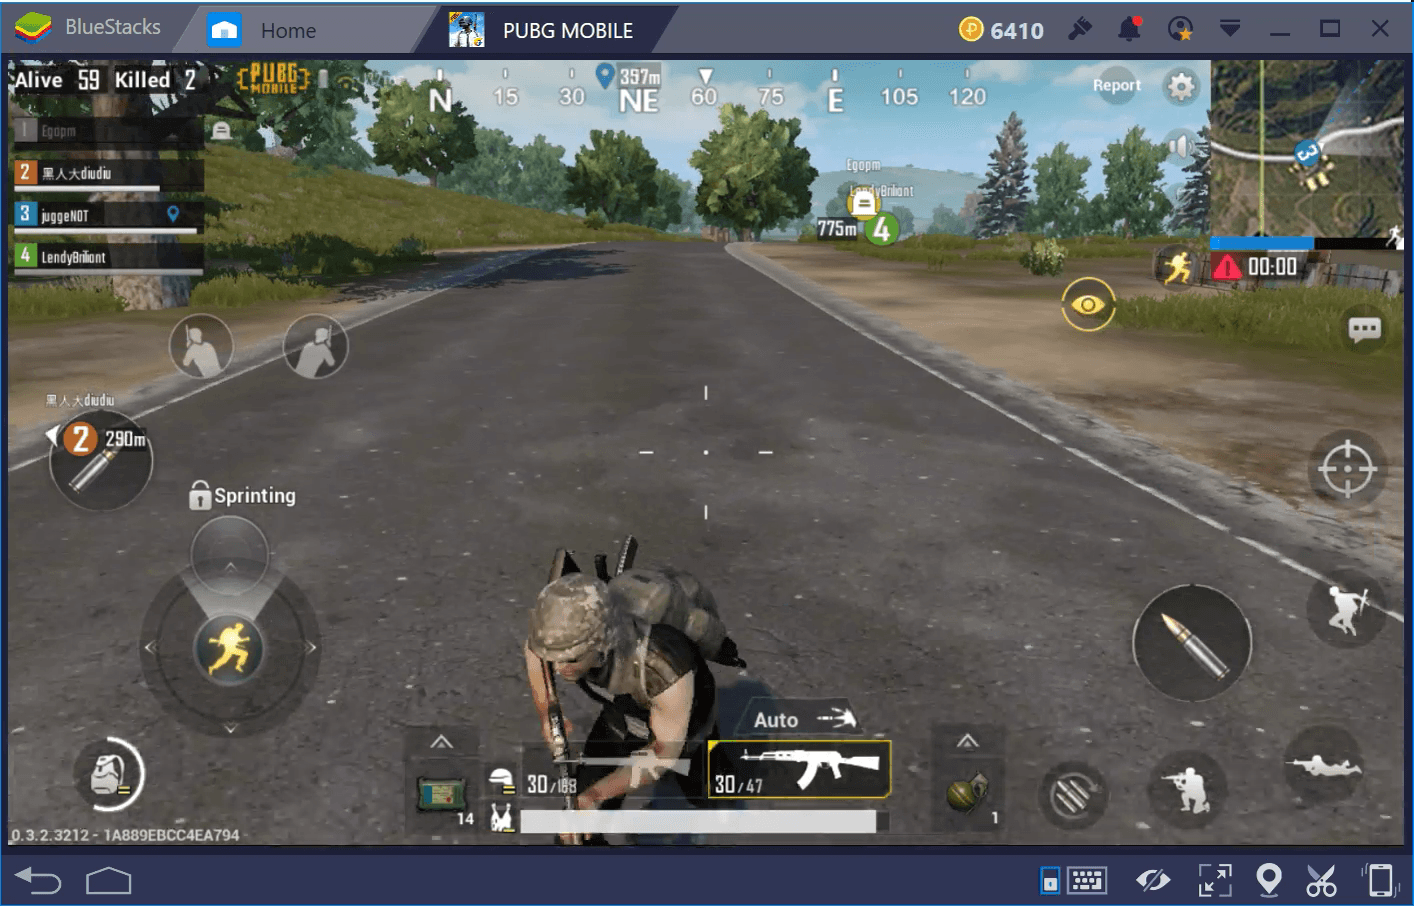 Top PUBG Mobile Combat Tips - How To Win More Gun Fights | BlueStacks